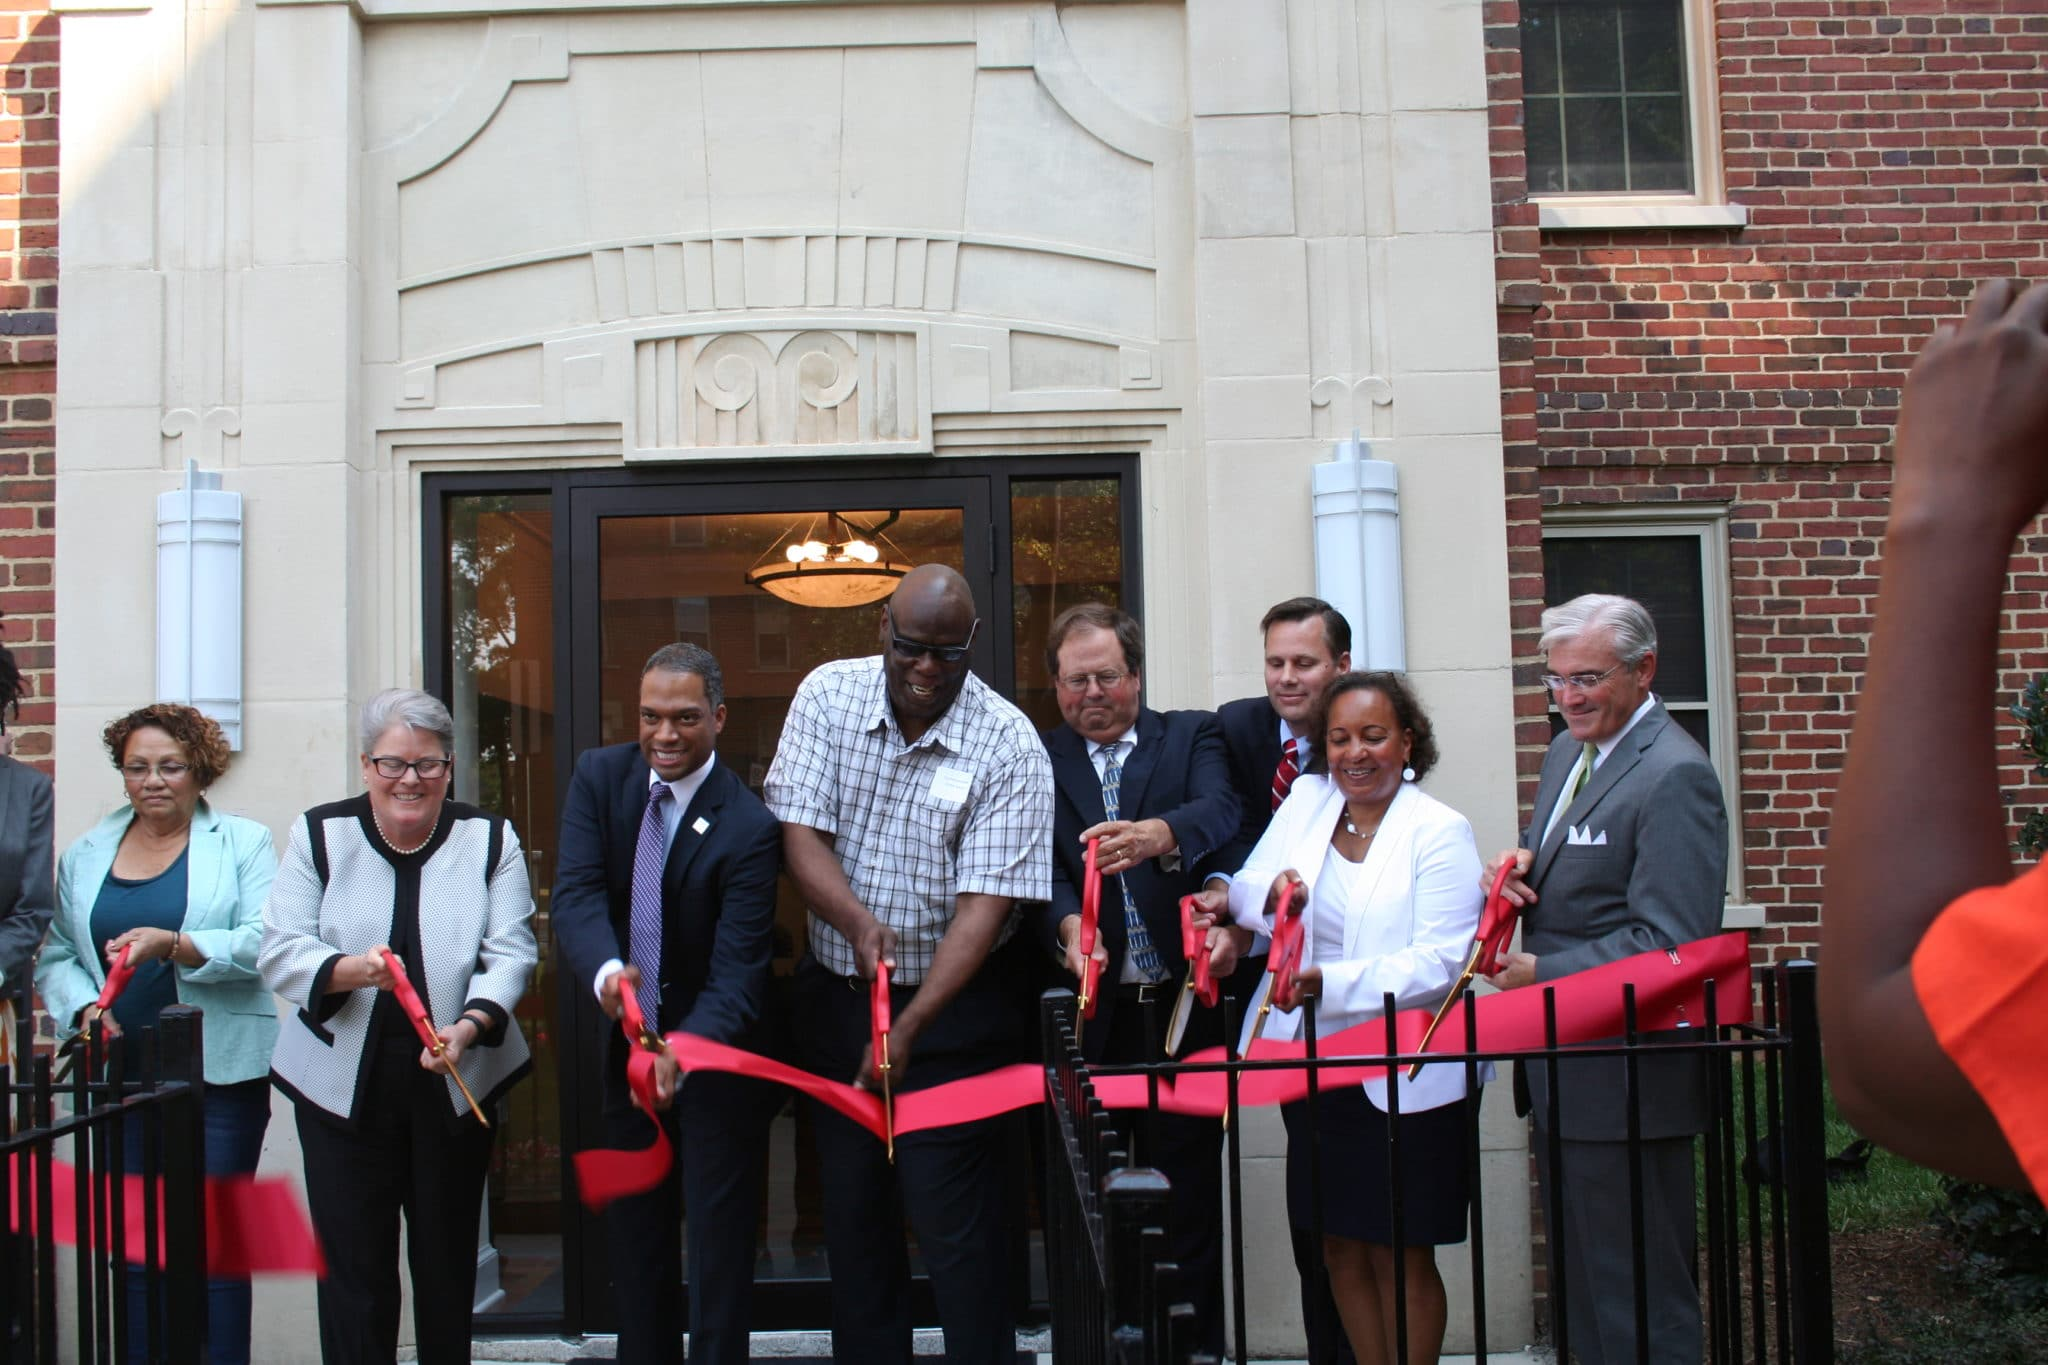 WC Smith Opens First Building at Juniper Courts